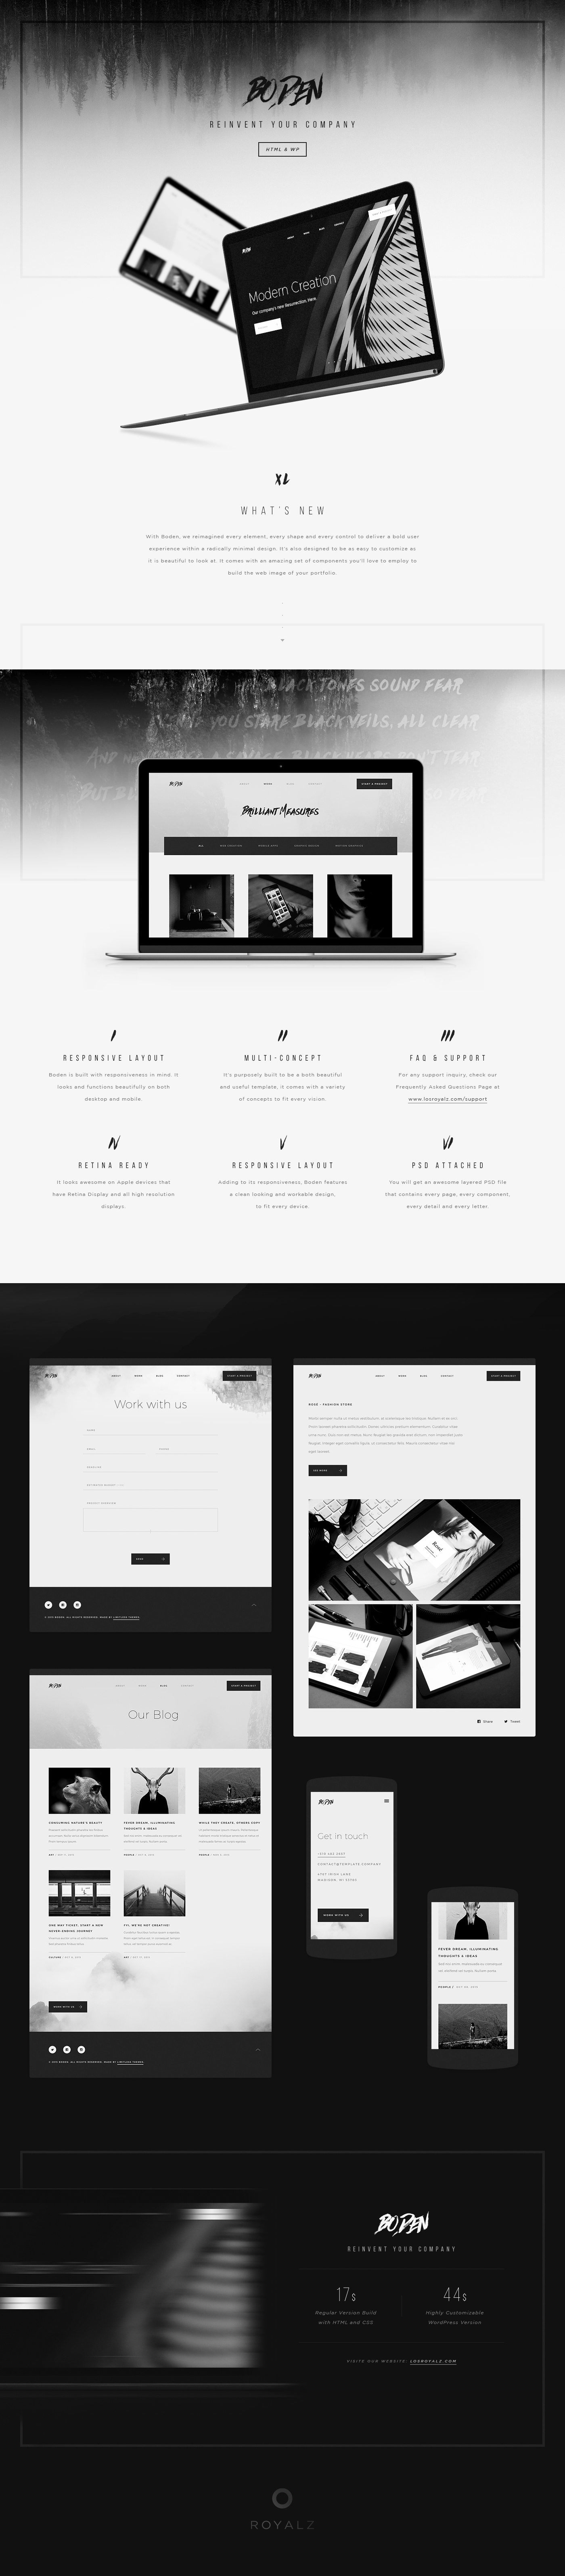 Boden - Creative Portfolio Template on Behance | cool | Pinterest